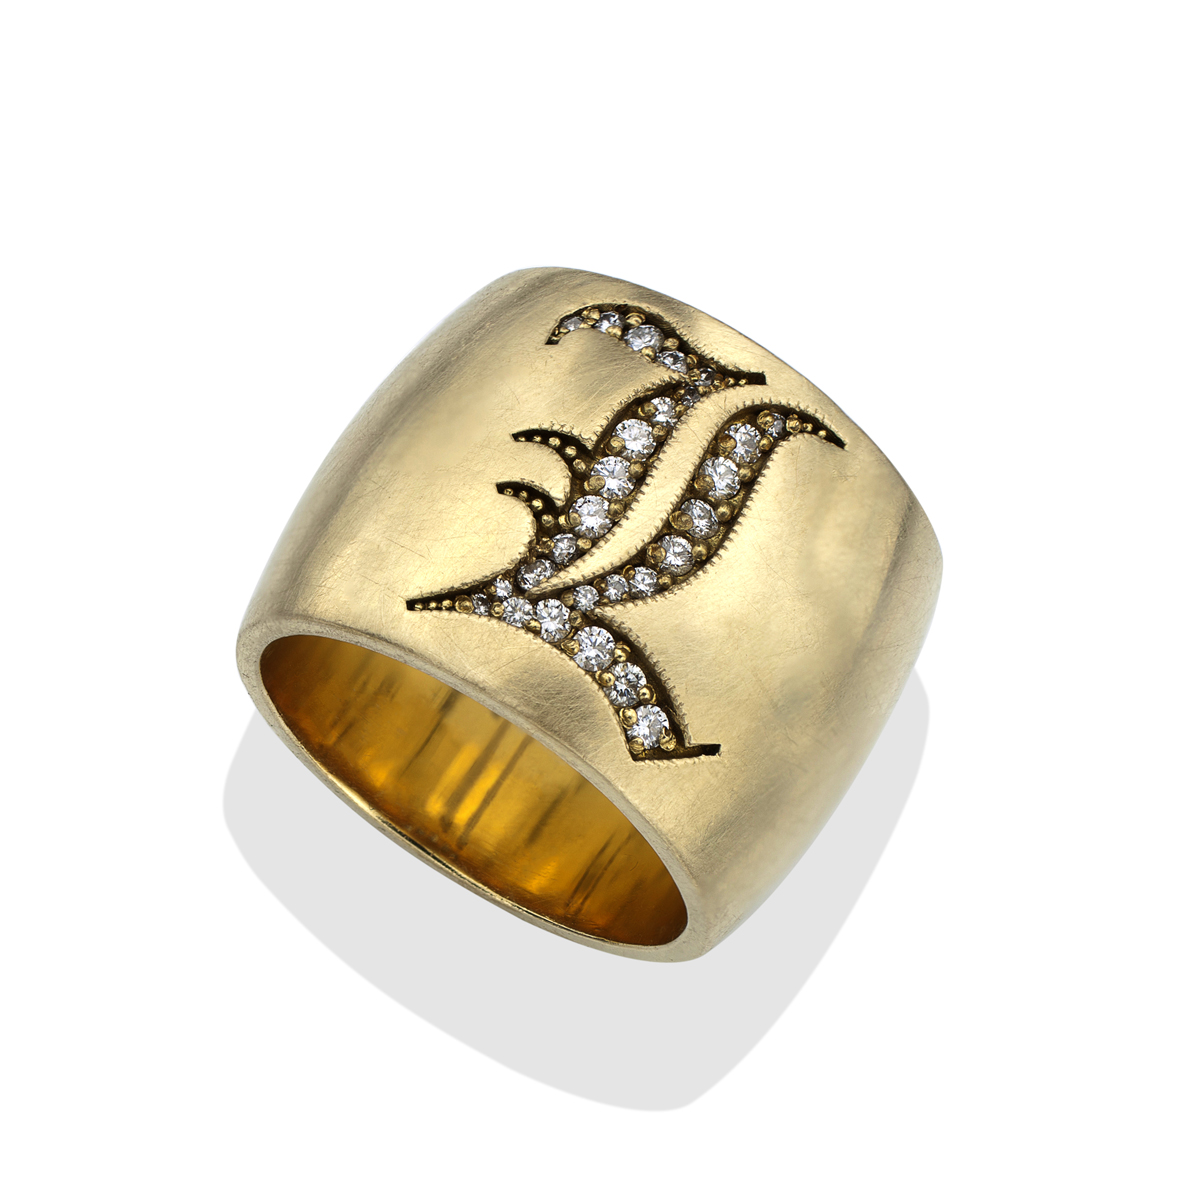 hand engraved crazyass brass rings a custommade crazyassjewelry jewelry buy order com from made monogram mens to crafted signet wedding ring big by